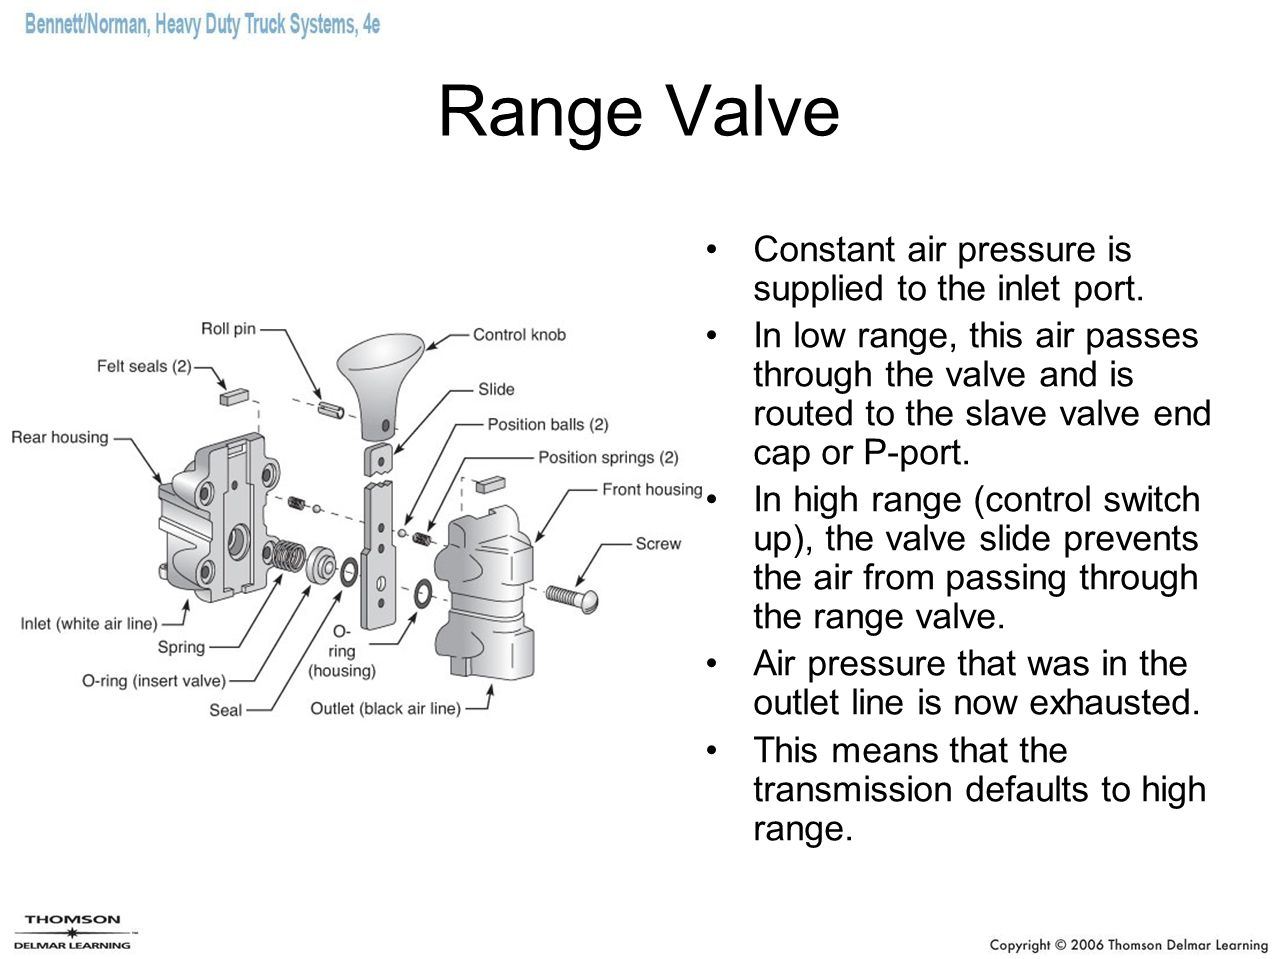 Range Valve Constant air pressure is supplied to the inlet port.